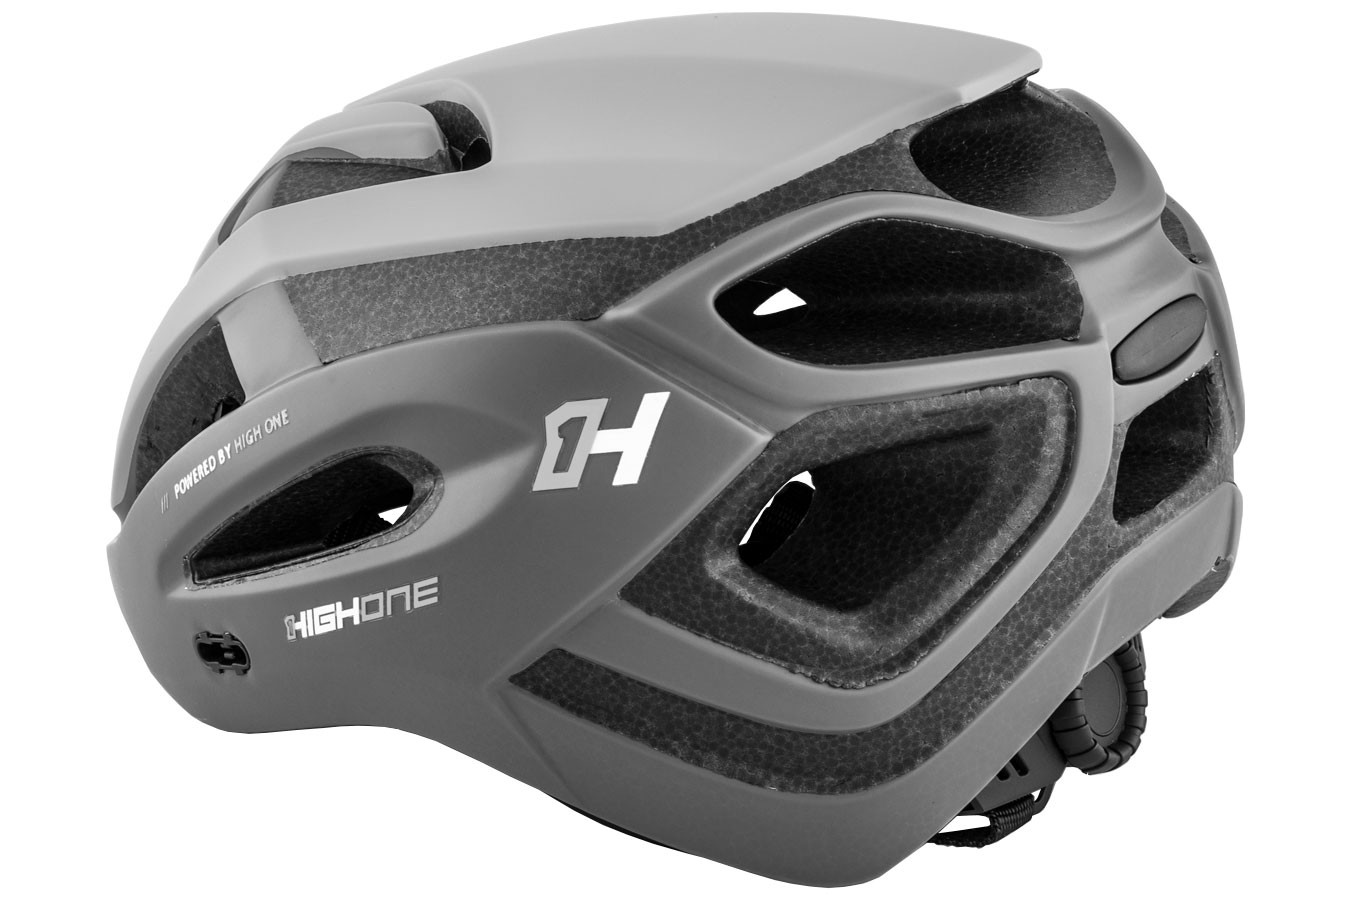 Capacete de ciclista MTB/Speed Ahead High One